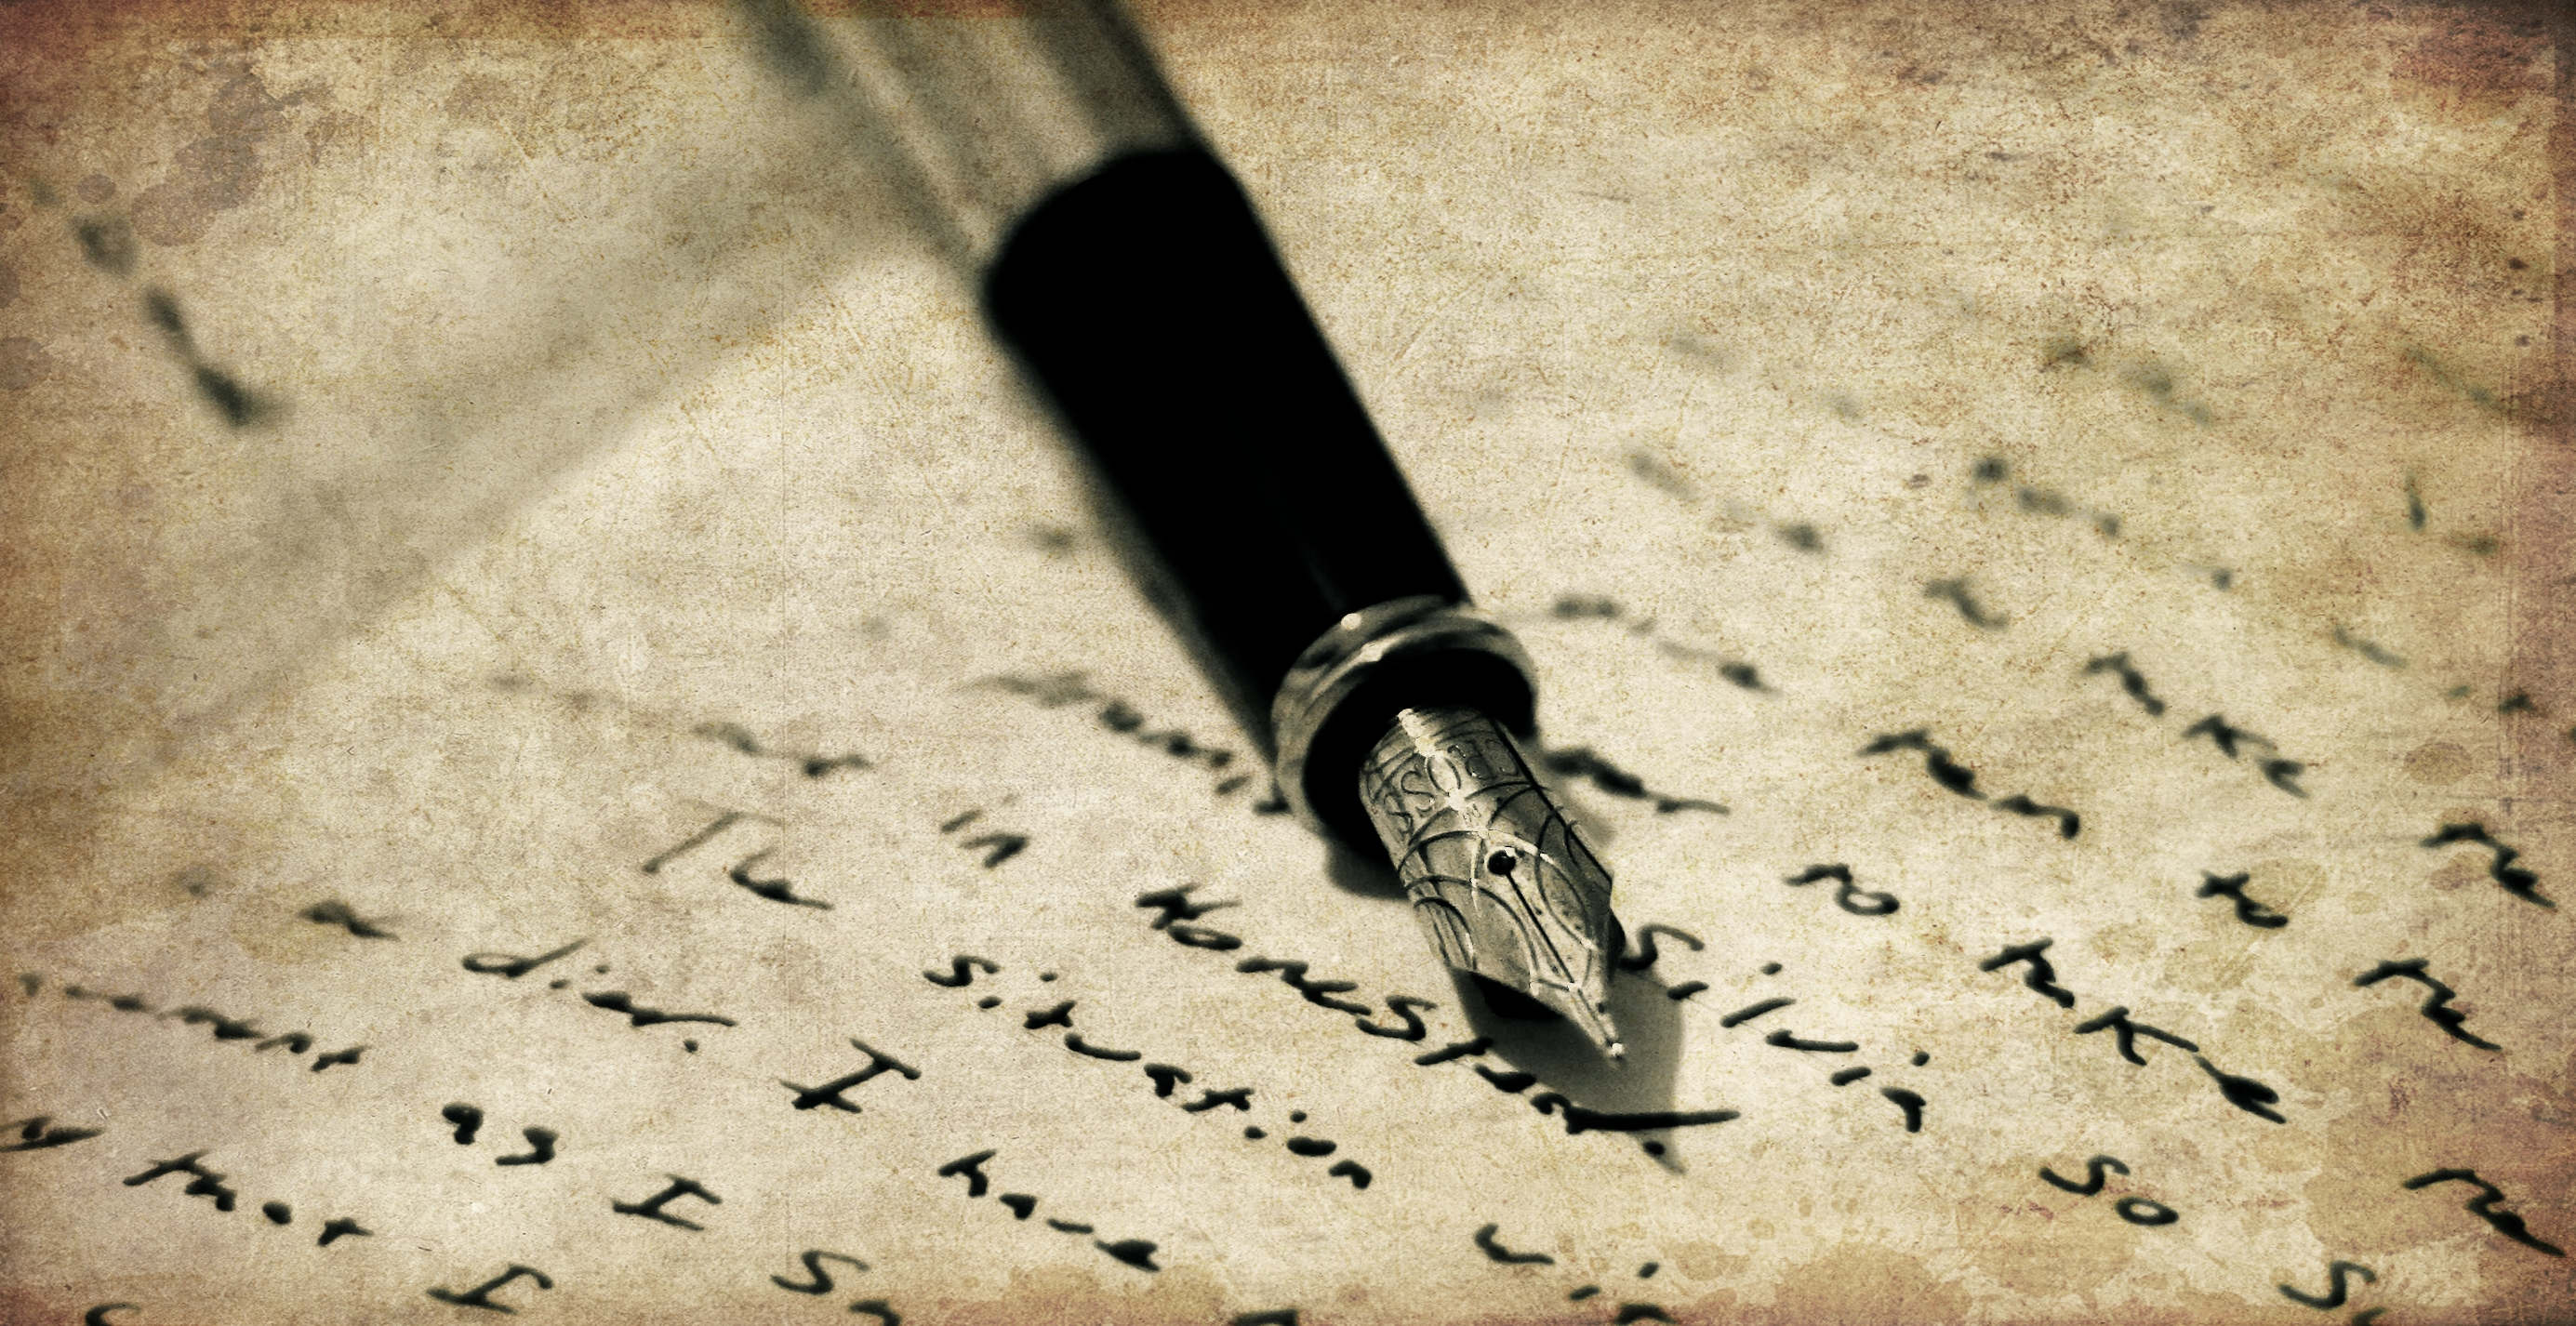 Picture of a brownish bacground with someones hand holding a pen, and writing